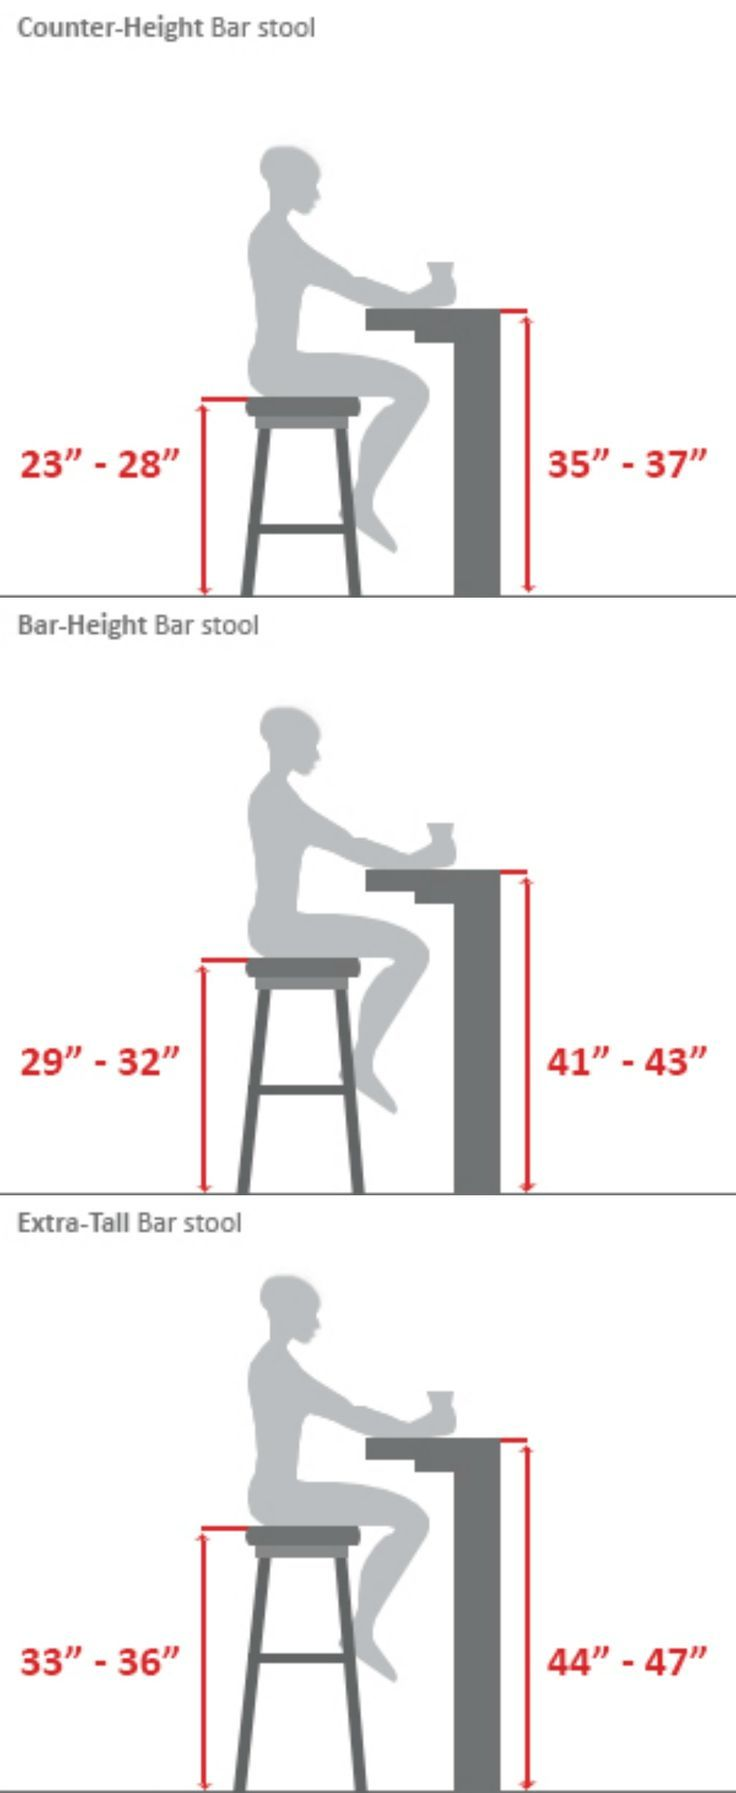 25 Best Ideas about Bar Height Table on Pinterest Bar  : 75c5042281bd6c3d2c2e320489a72059 from www.pinterest.com size 736 x 1793 jpeg 49kB